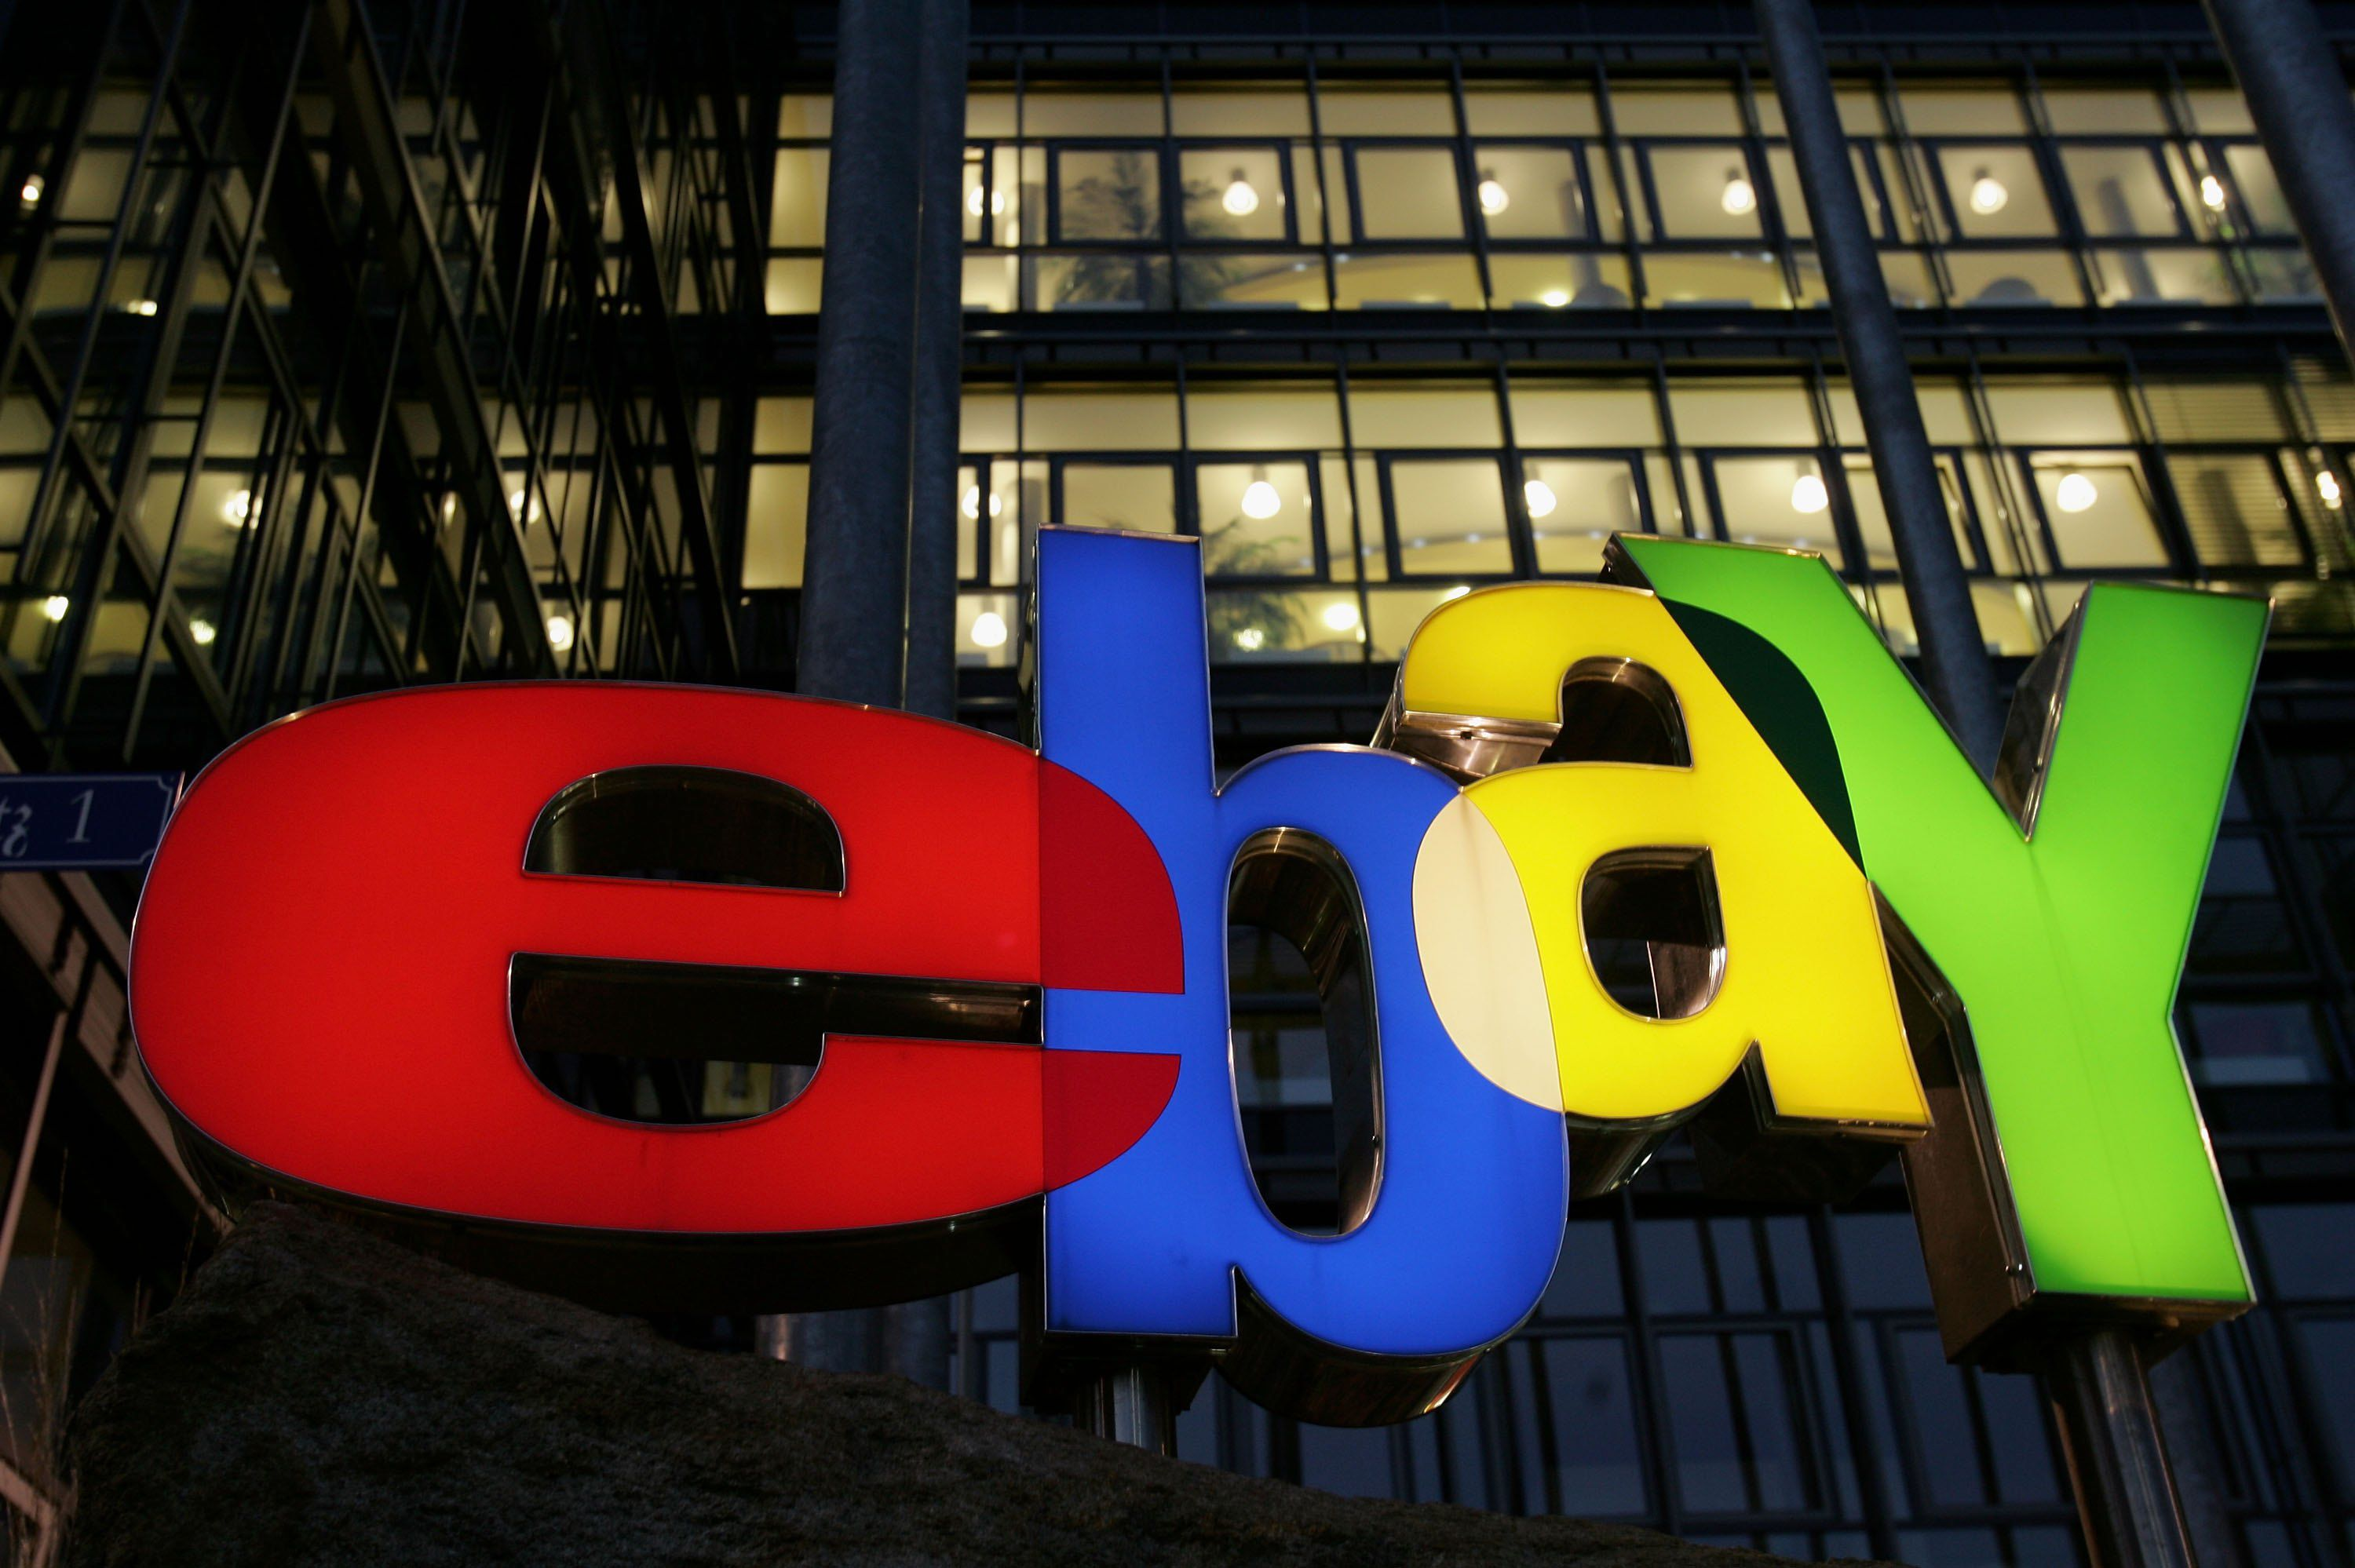 How To Contact Ebay Customer Service Directly